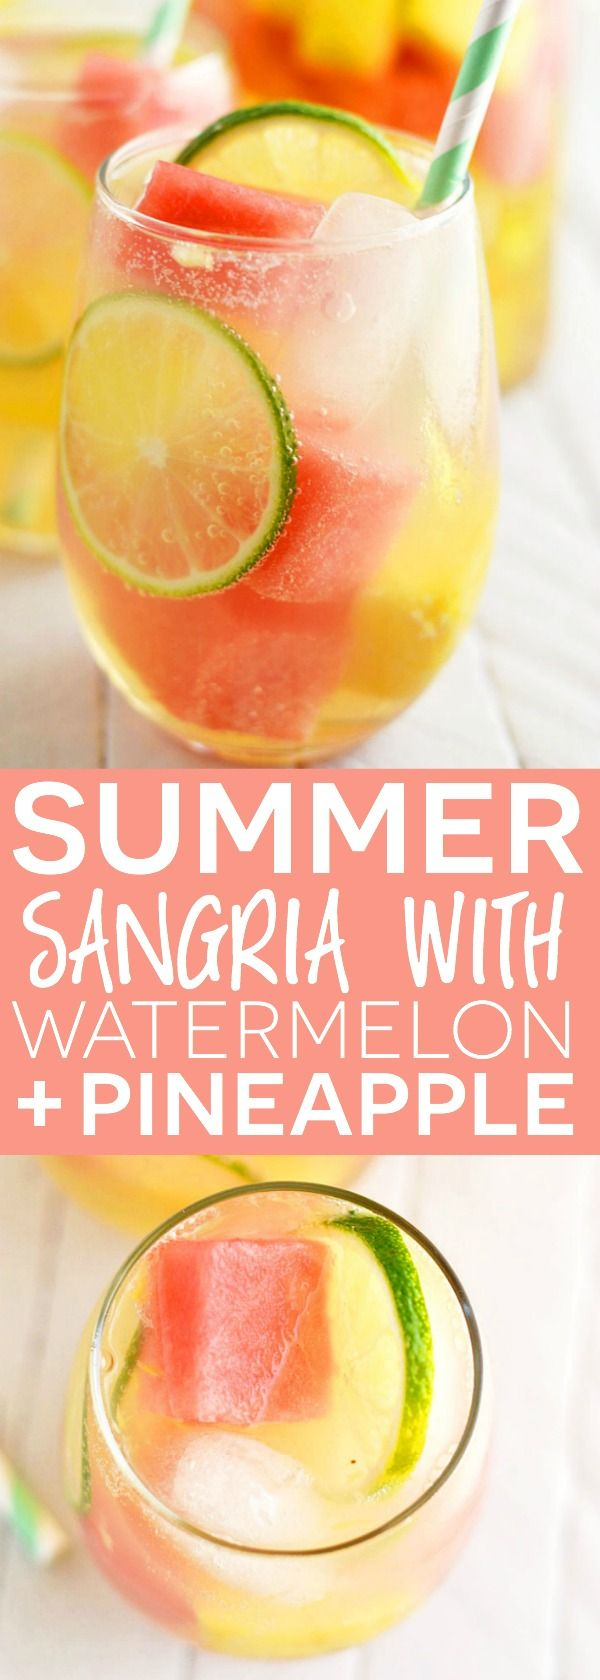 Sangria clipart cocktail hour Best Watermelon Pineapple from Summer